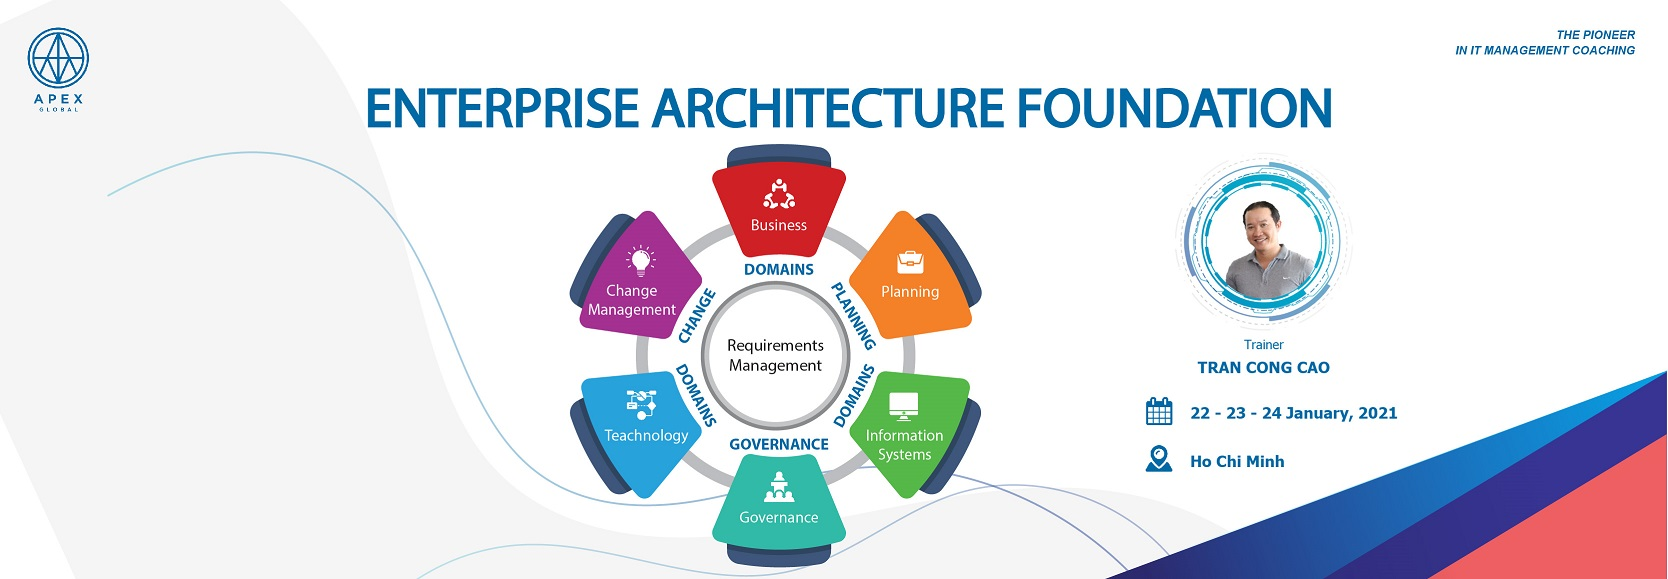 Enterprise-Architecture-Foundation